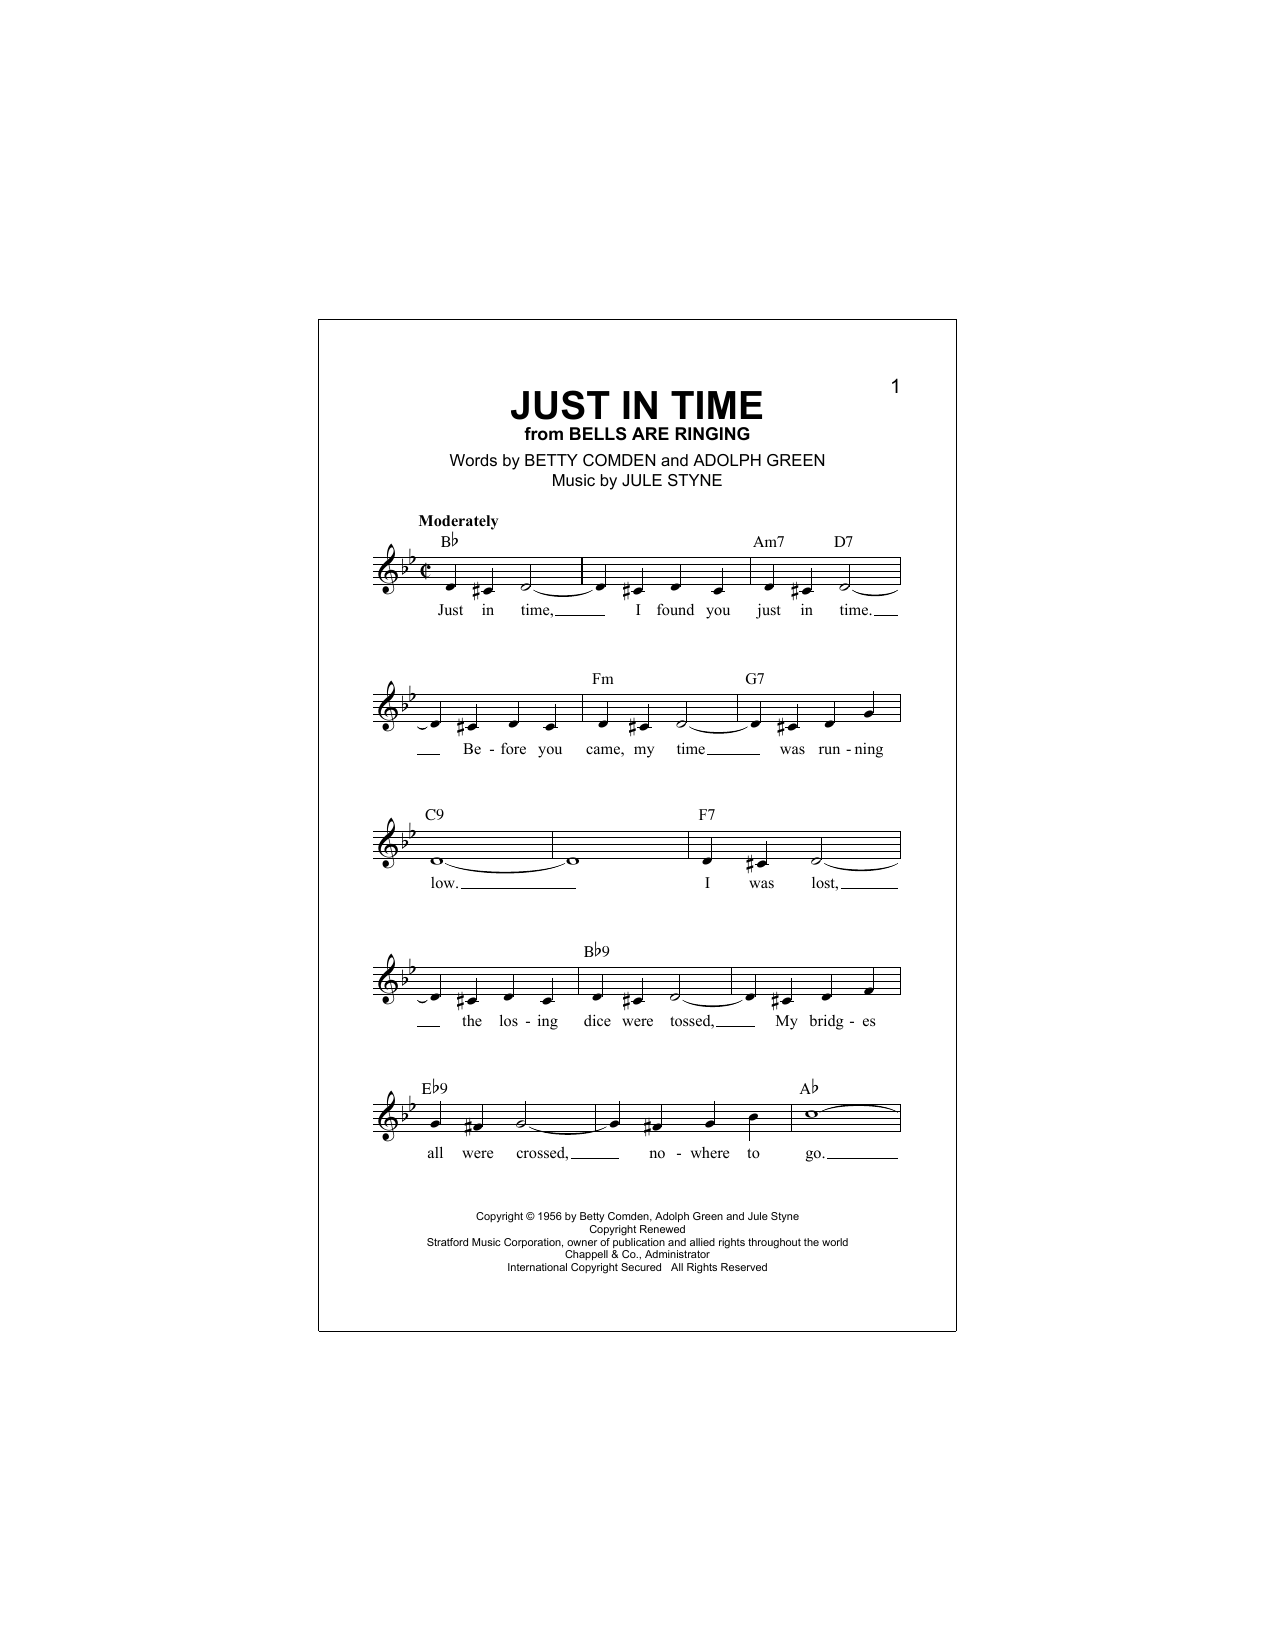 Adolph Green Just In Time sheet music notes and chords. Download Printable PDF.